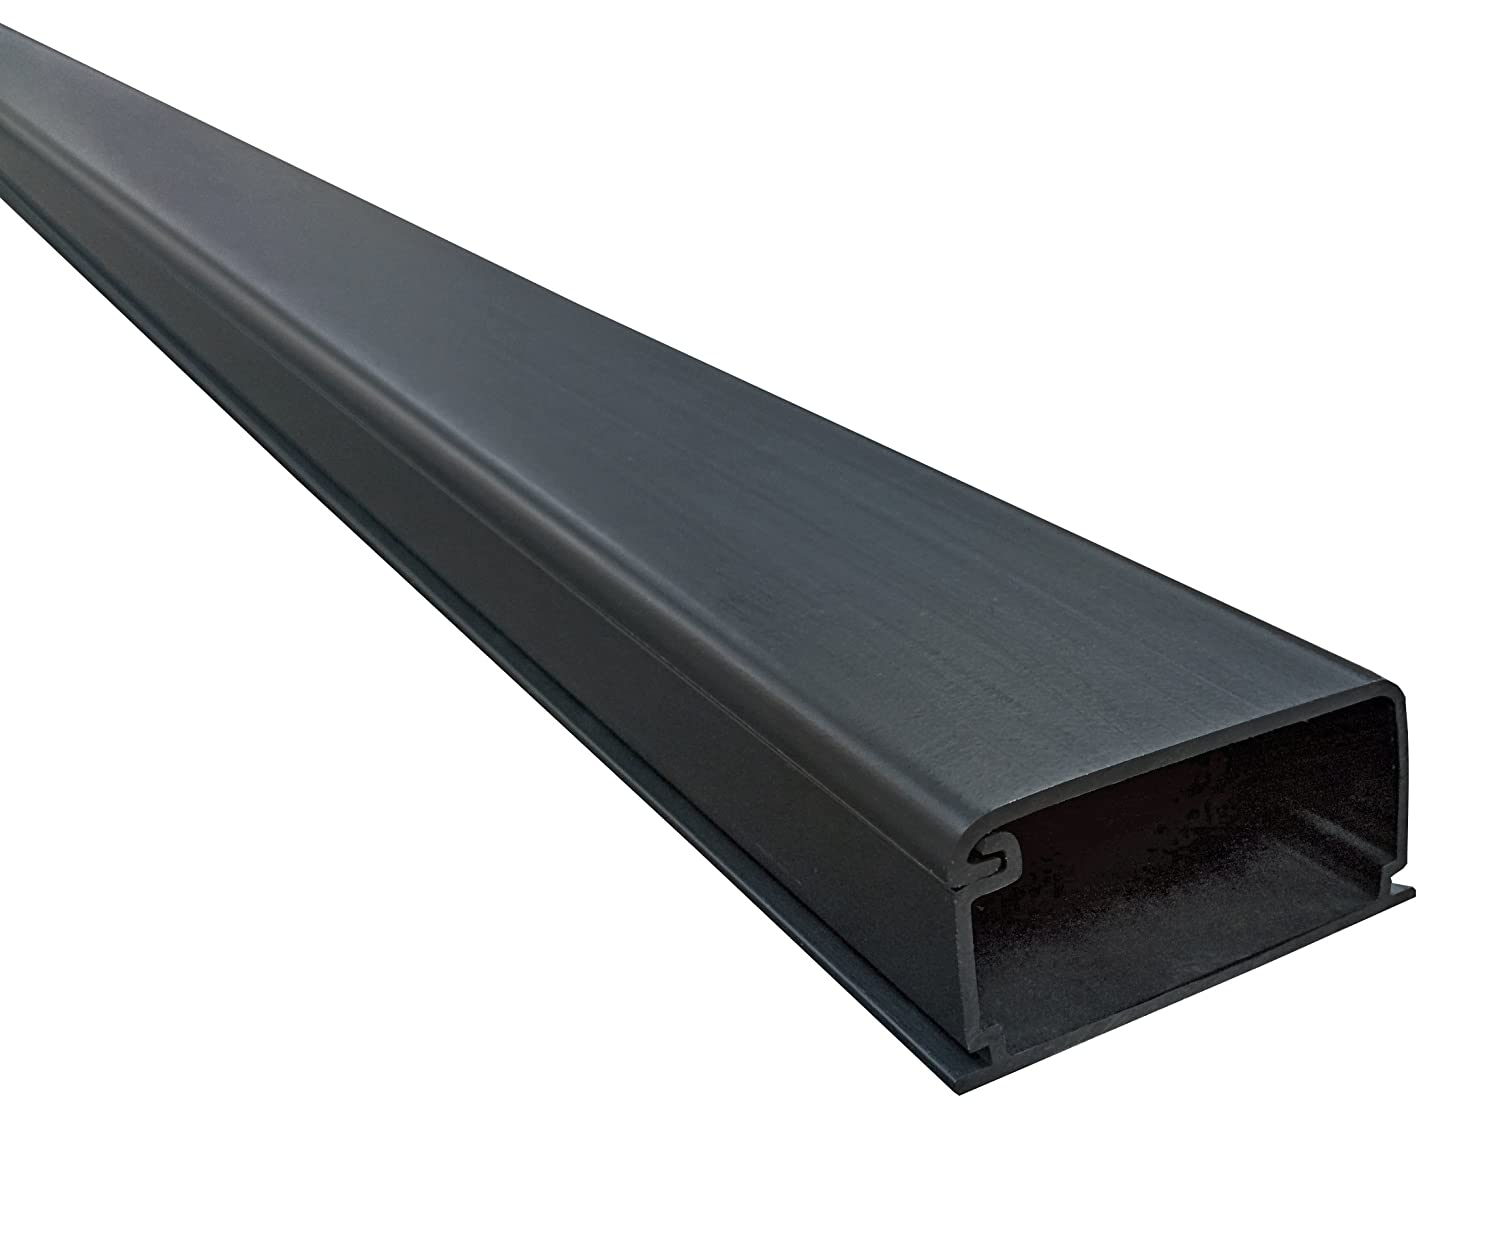 "Extra Large Latching Cable Raceway - 2"" x 1"" Channel Size - 1 Stick - 5FT Long - Black Electriduct 4330219086"